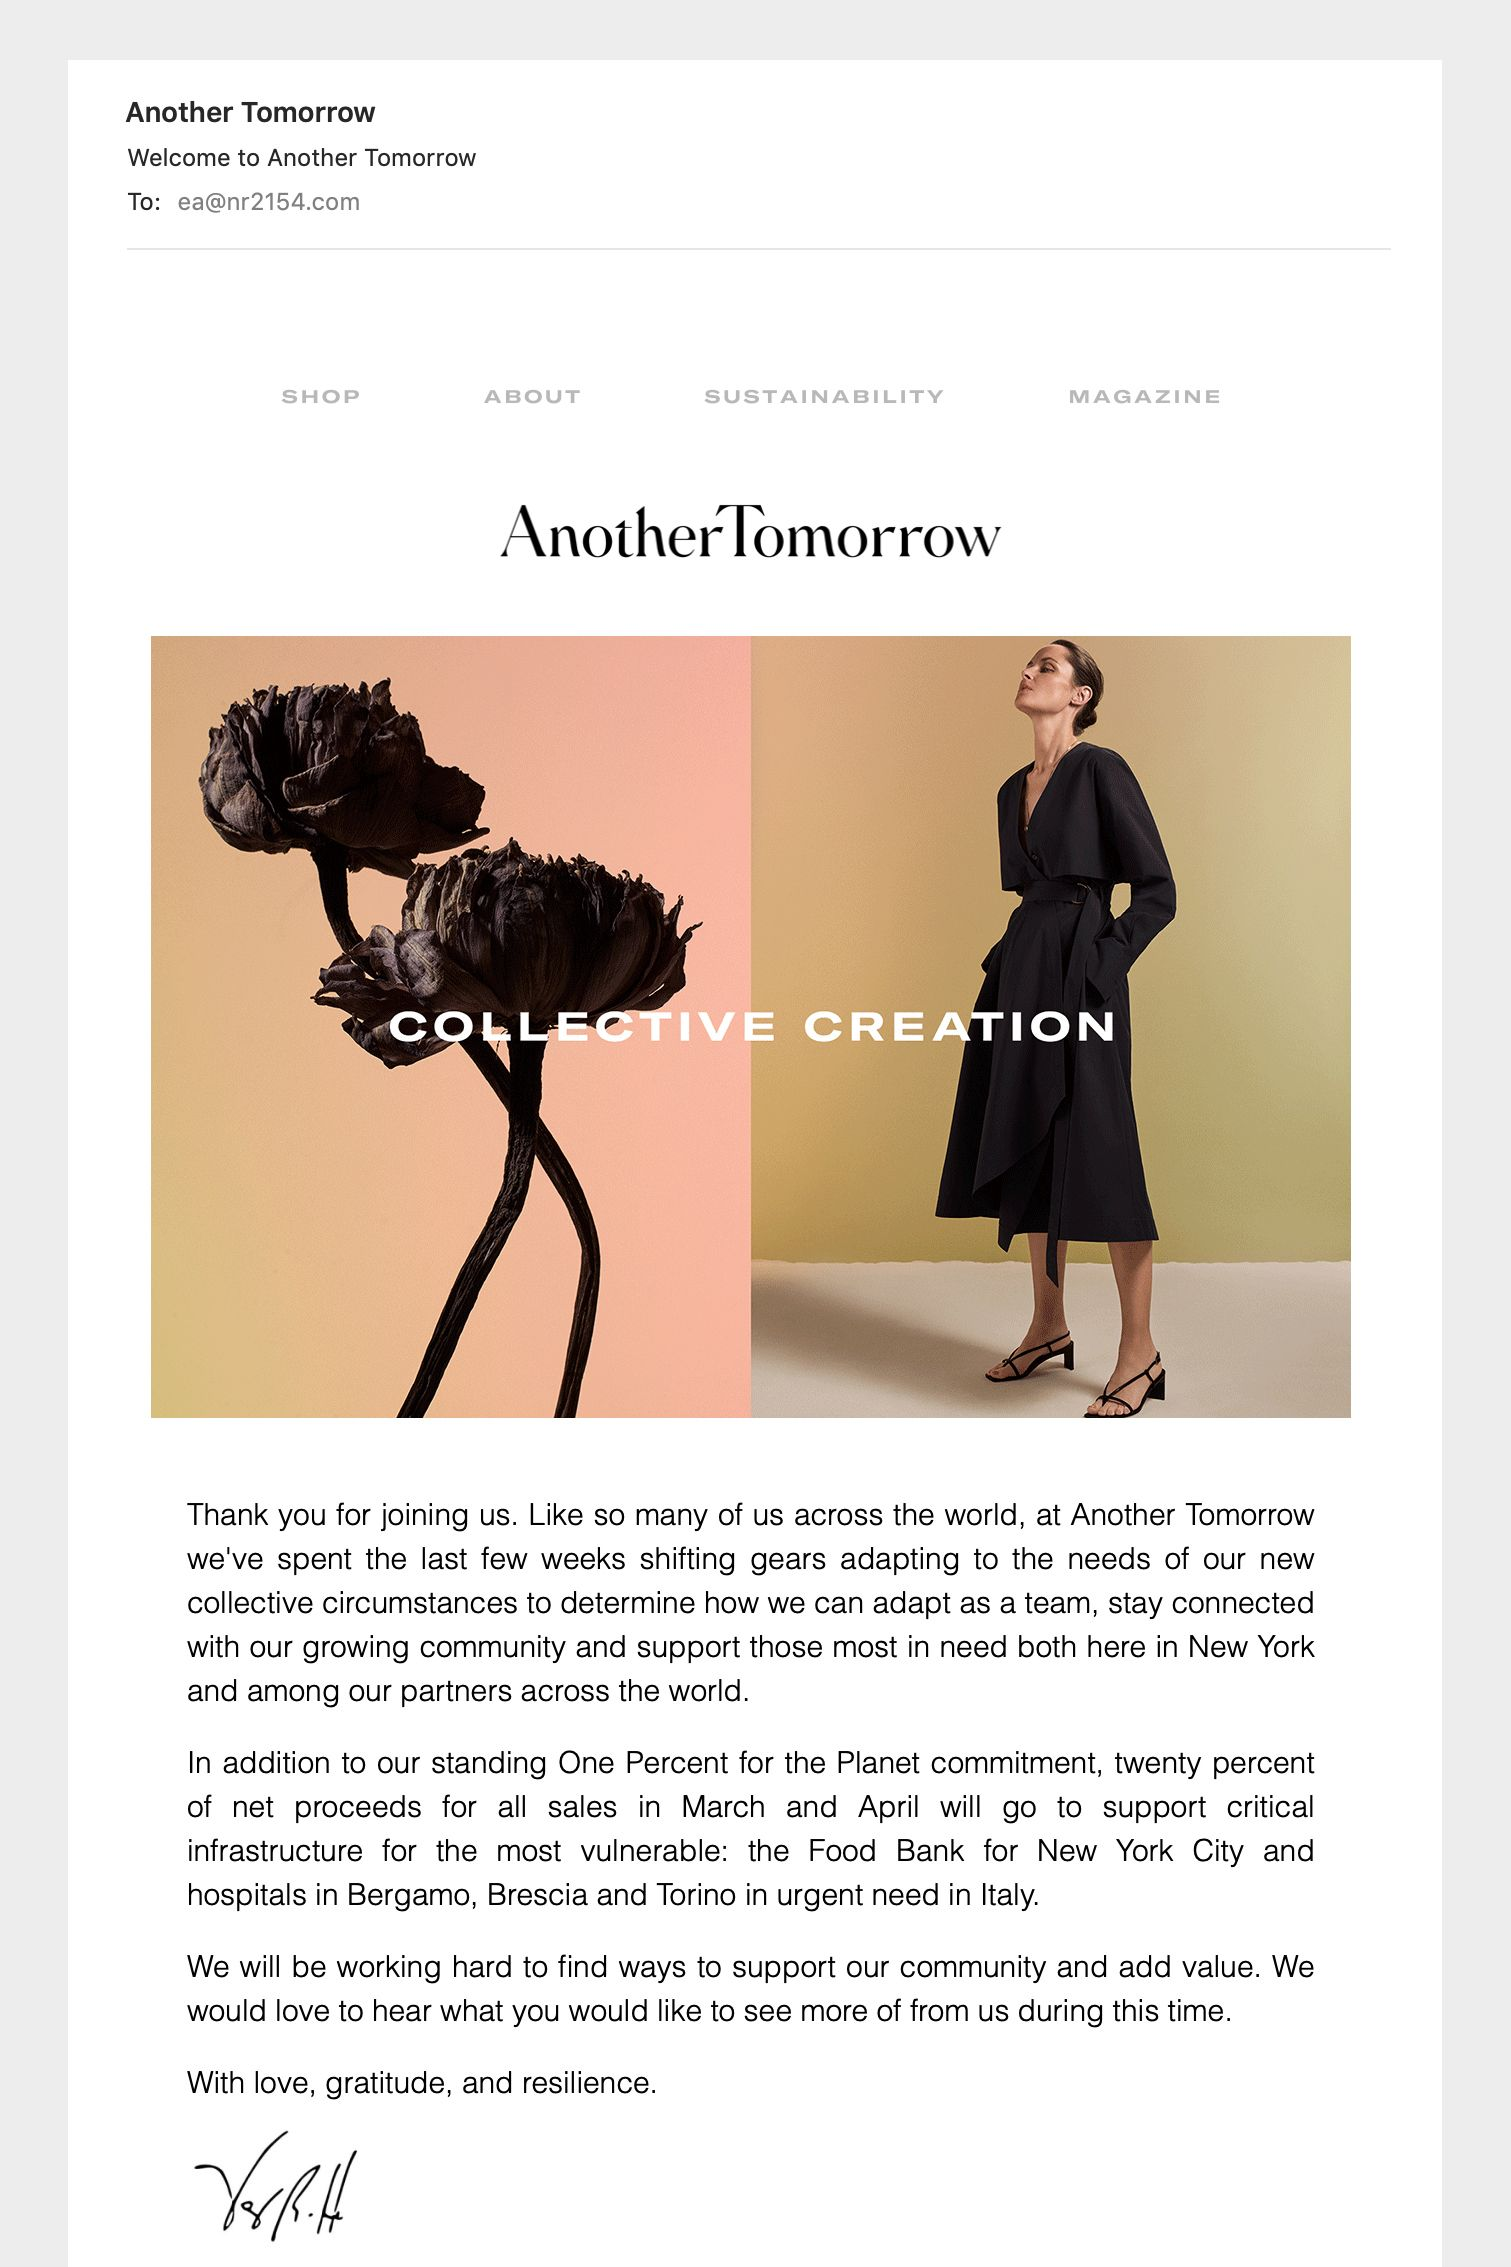 Another Tomorrow newsletter design